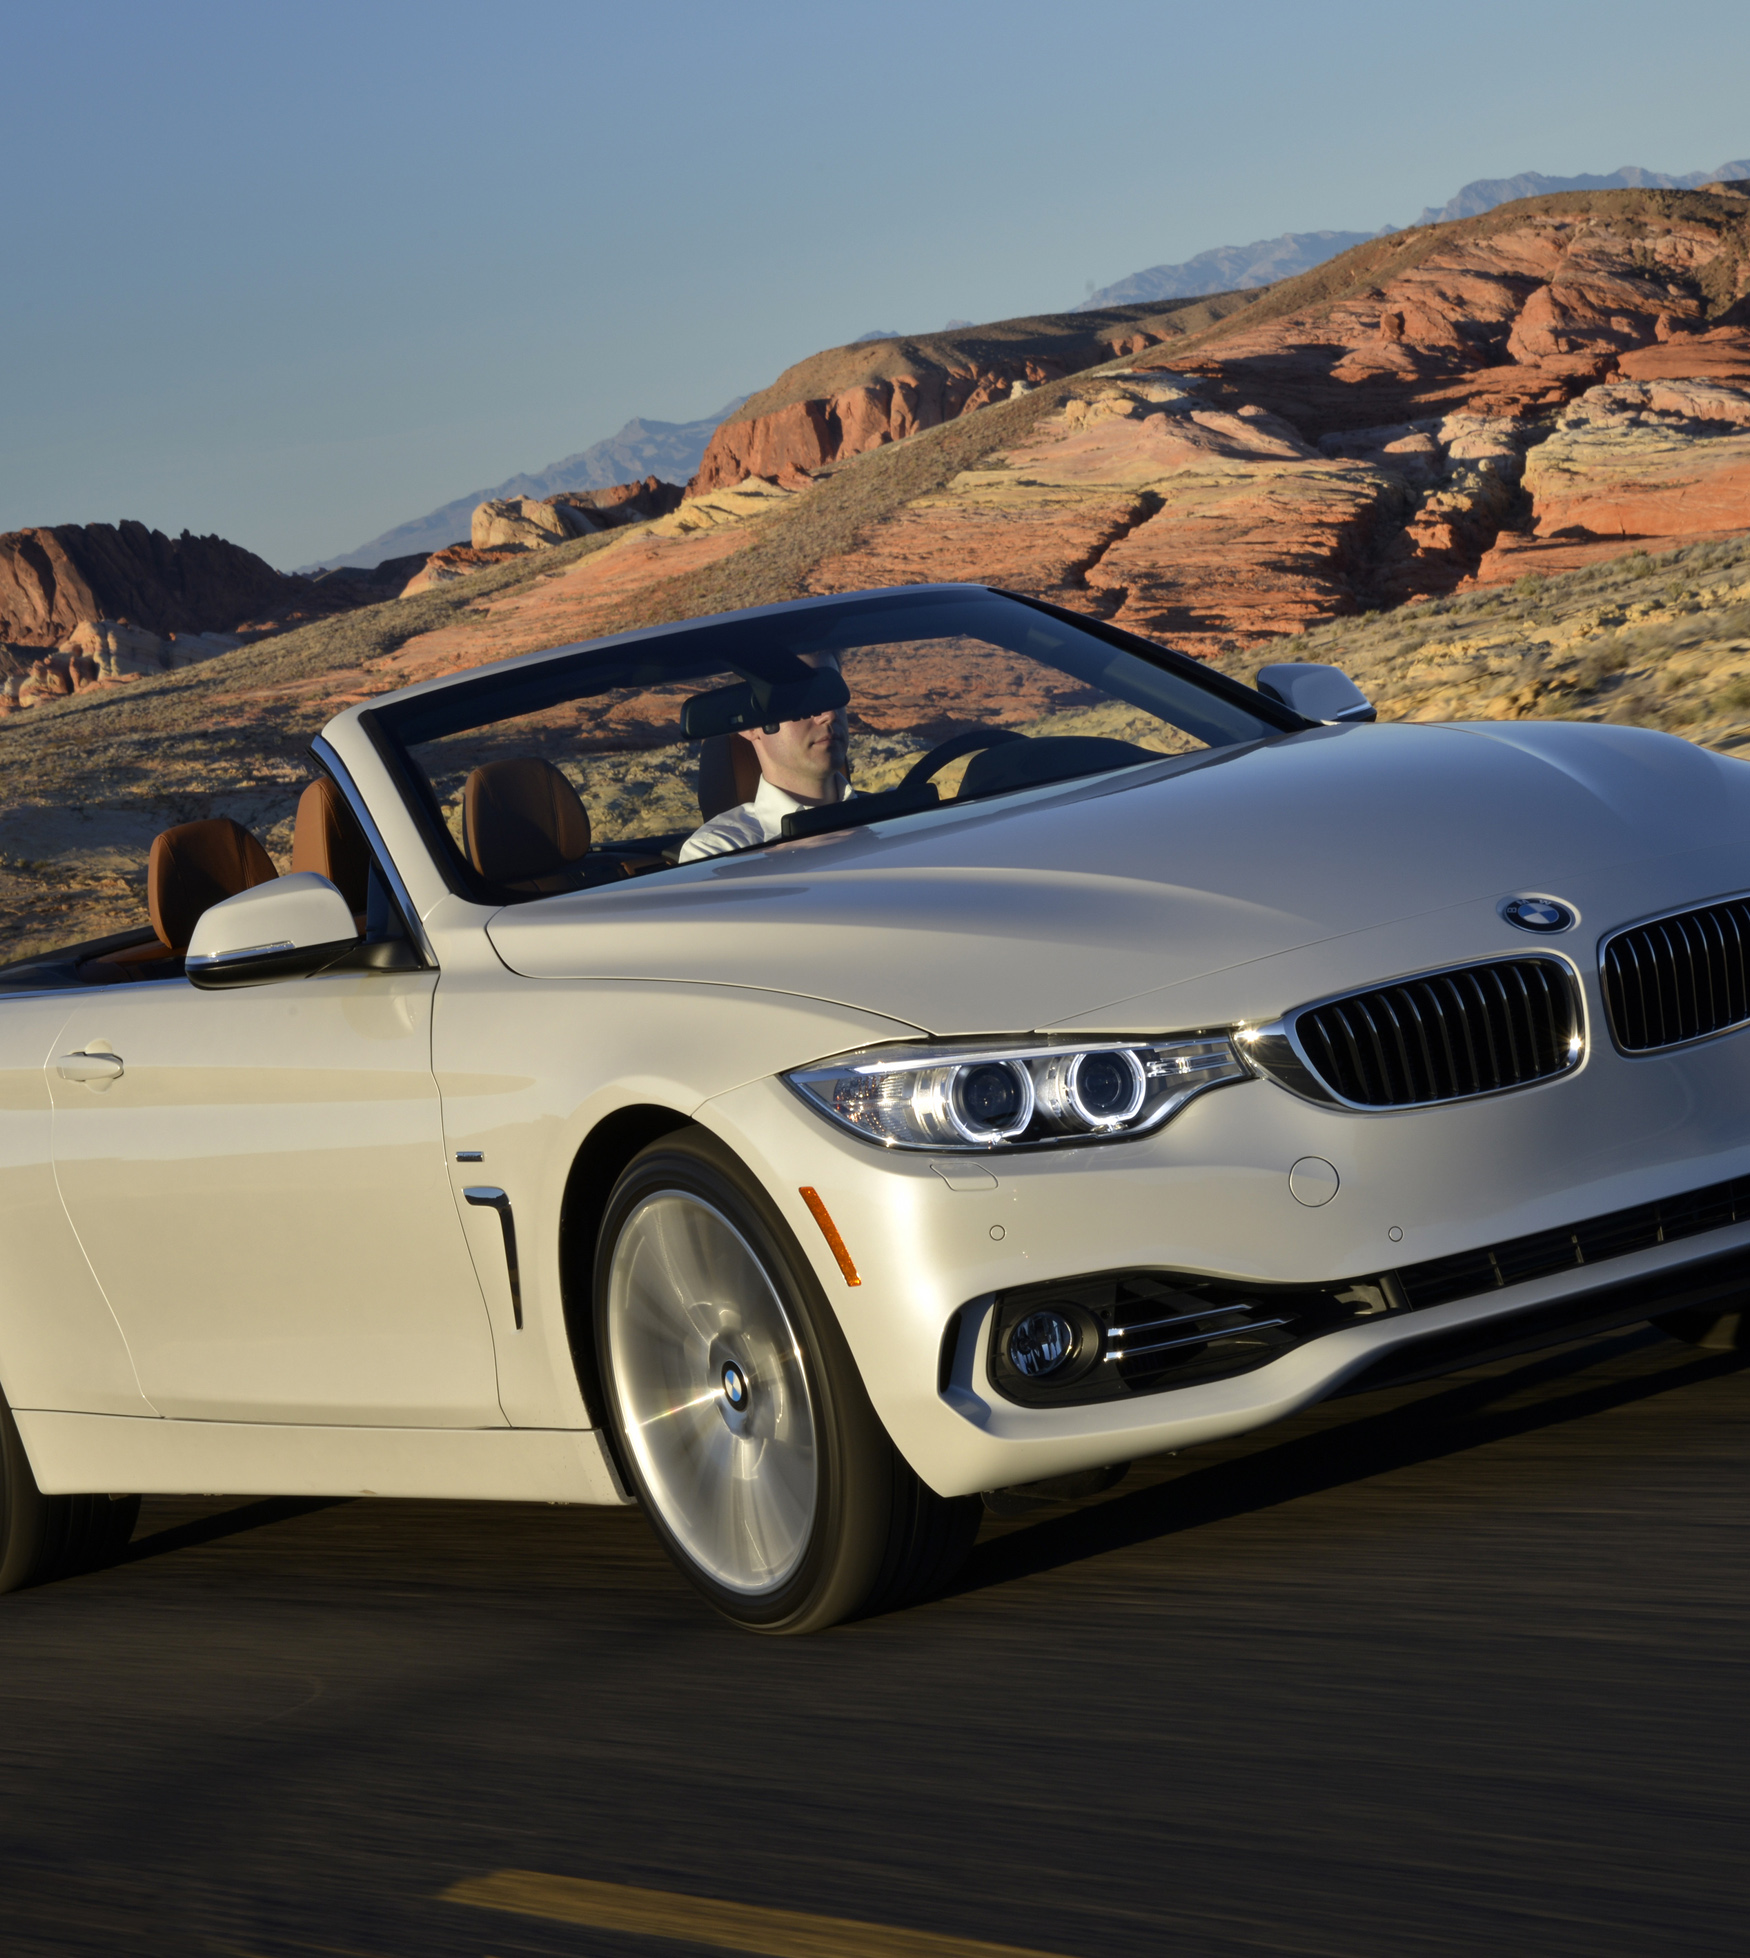 435i Convertible has BMW's spirit